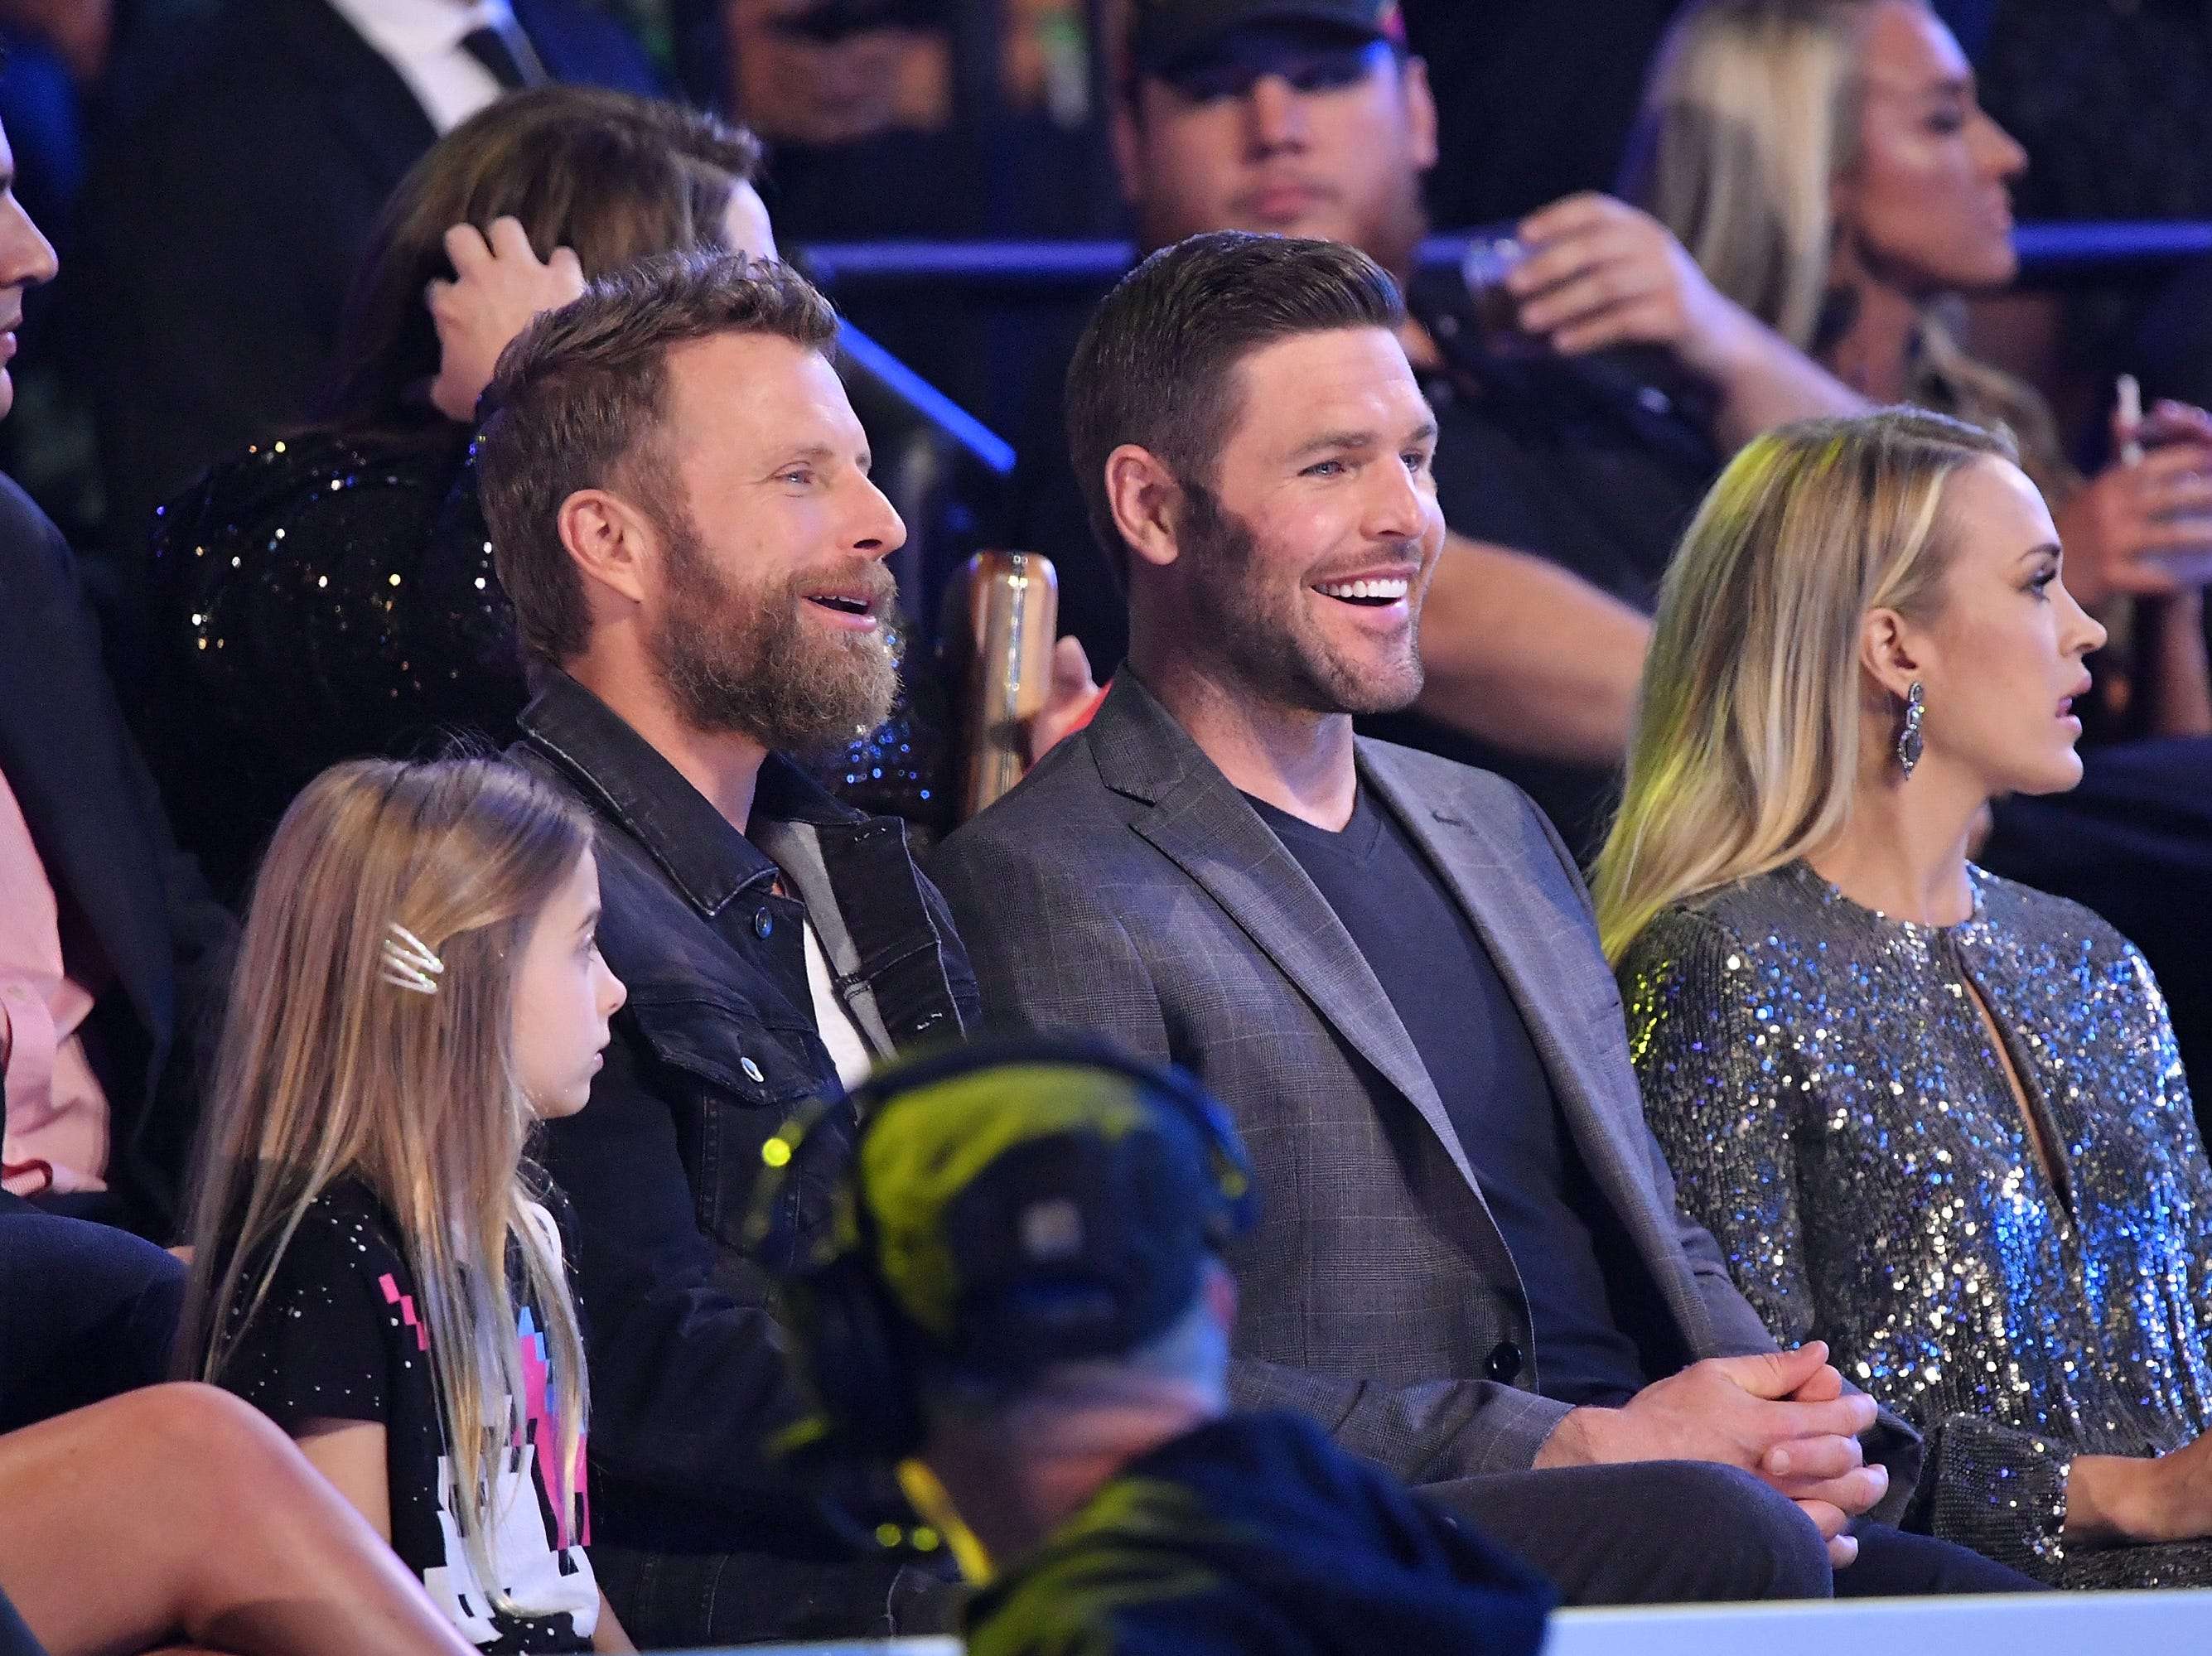 Dierks Bentley (from left), Mike Fisher and Carrie Underwood attend the 2018 CMT Music Awards on June 6, 2018 in Nashville.